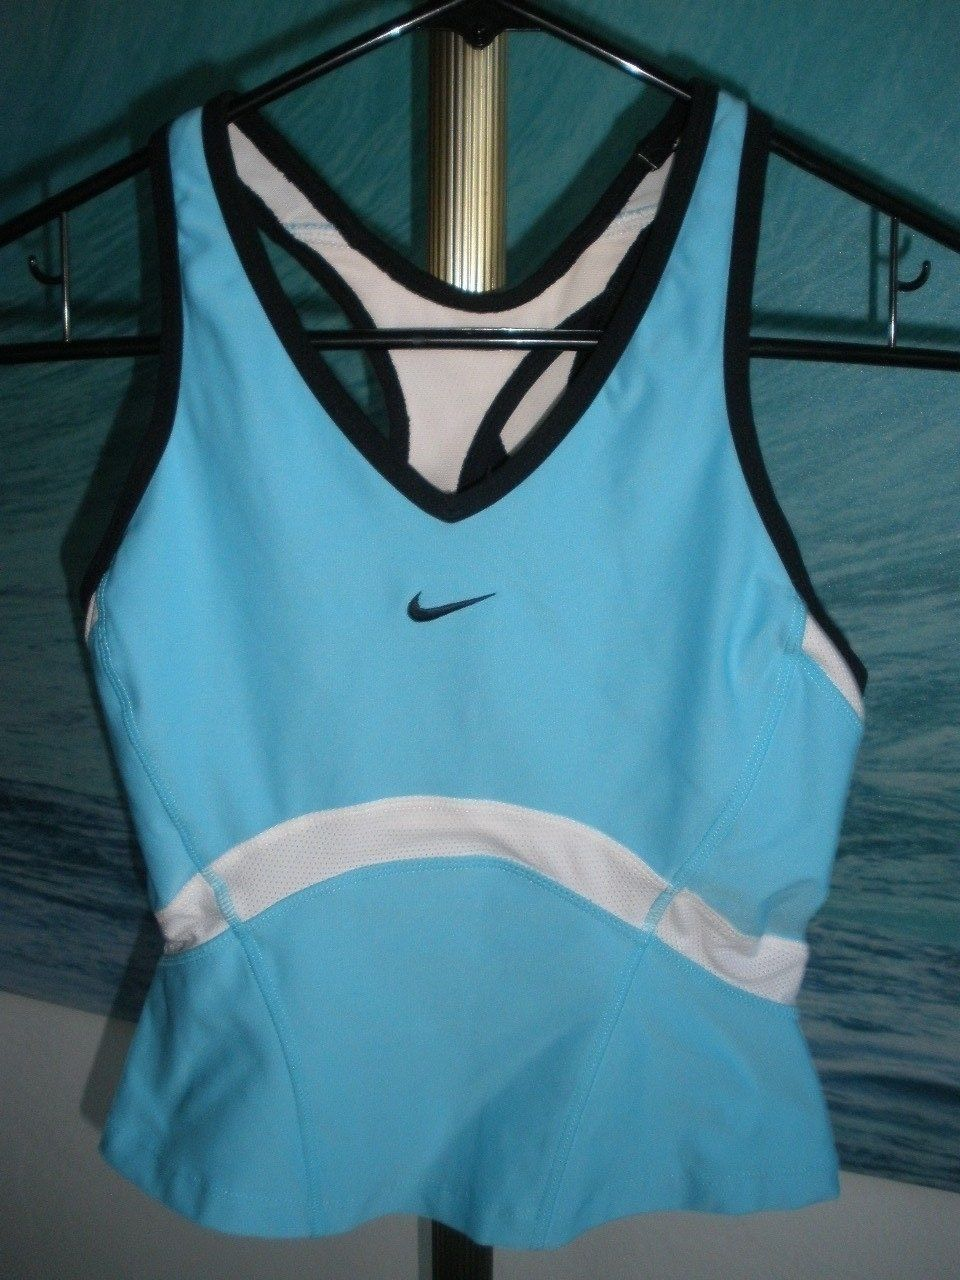 8673aaecfc85a Nike Women s DRI-FIT Running Tennis Athletic and 16 similar items. S l1600